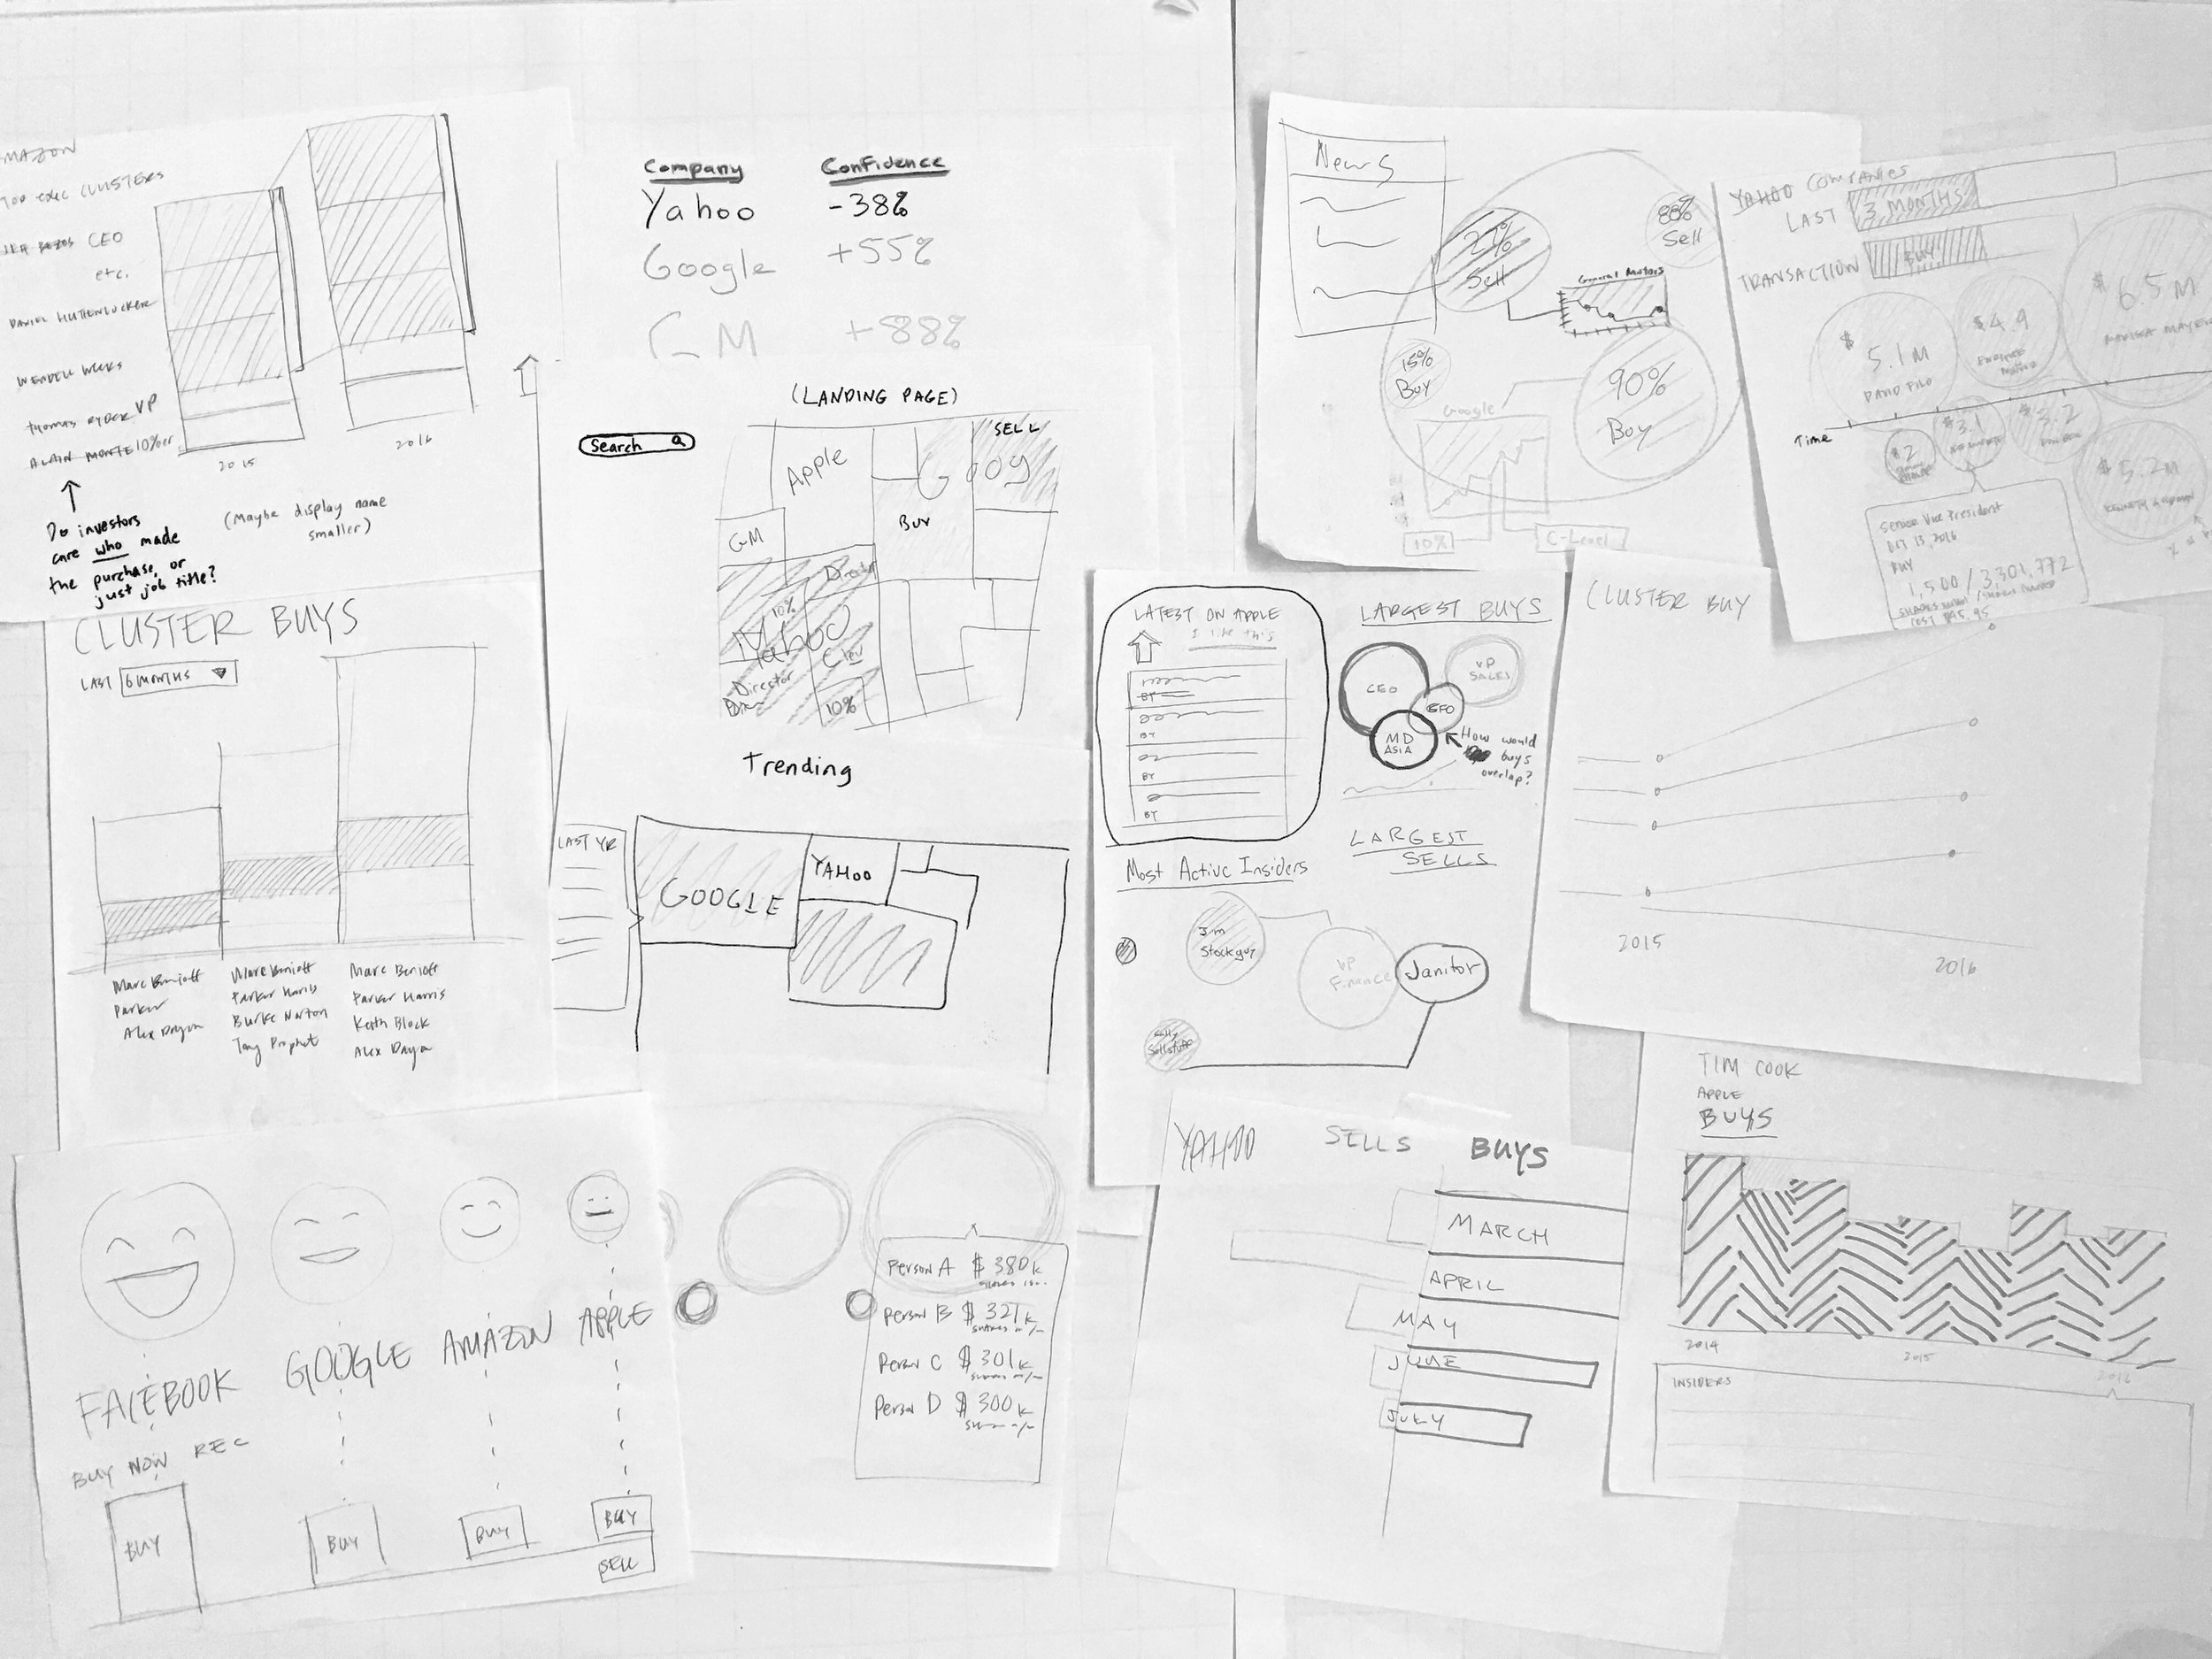 I led the team brainstorm based on the user needs we discussed. All ideas were encouraged as at this stage it helps create boundaries and shape the scope of the product. For instance, one sketch on the bottom right sparked a conversion on how we wanted to be thoughtful about combining emotion and financial data.